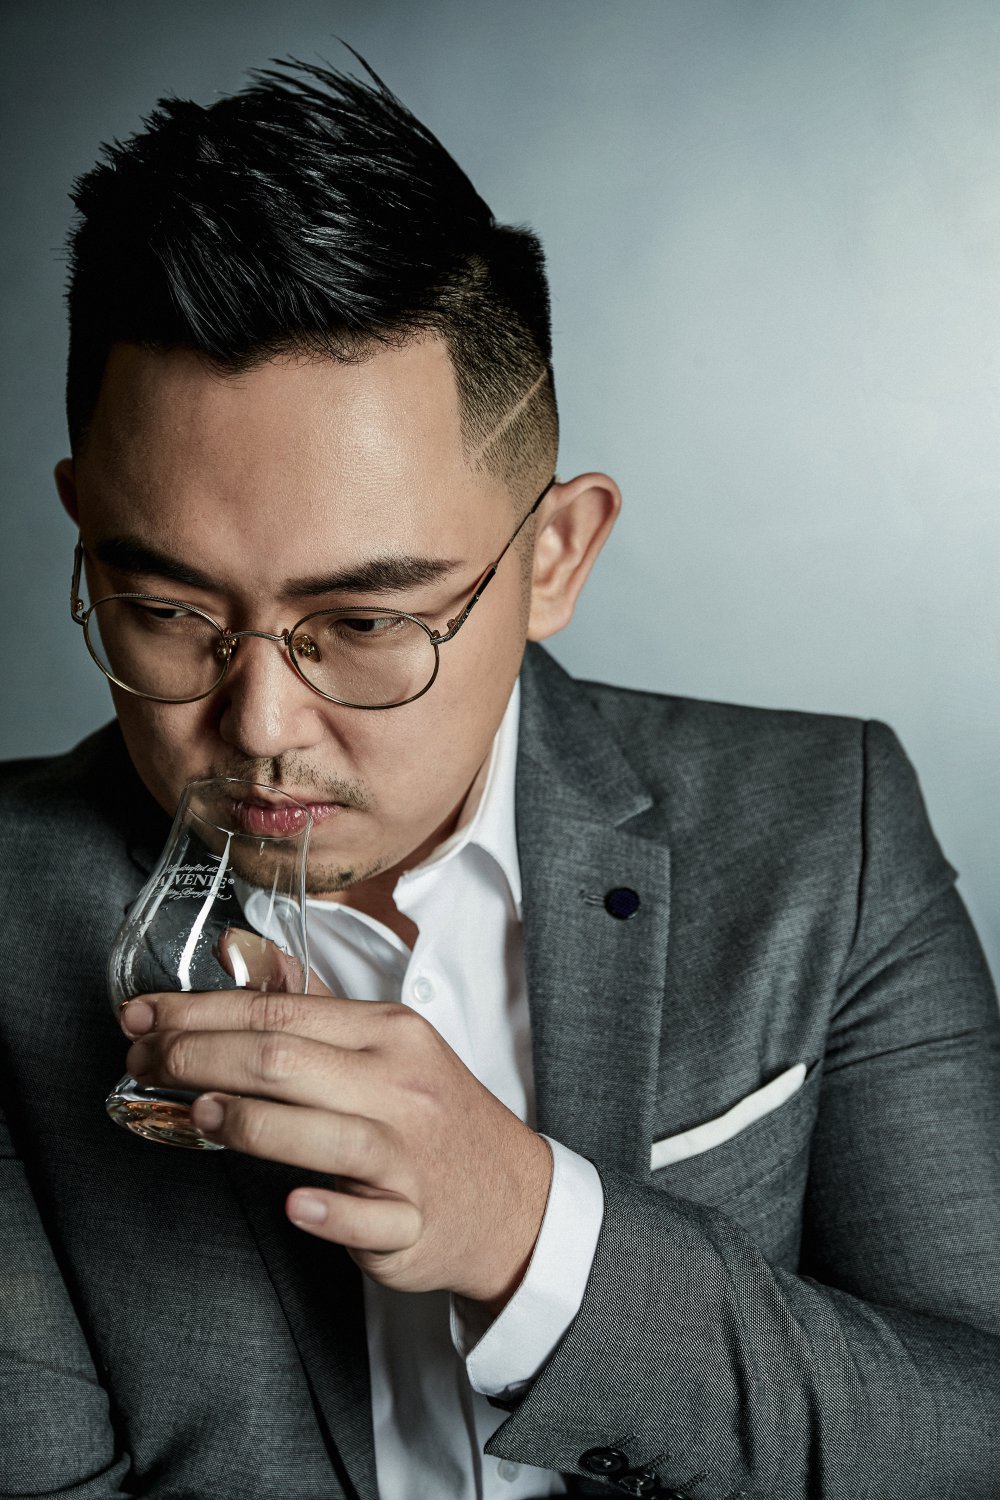 kingssleeve interview Johnny Wong founder of breakout whisky - Johnny Ong: Success Is Not One's Alone